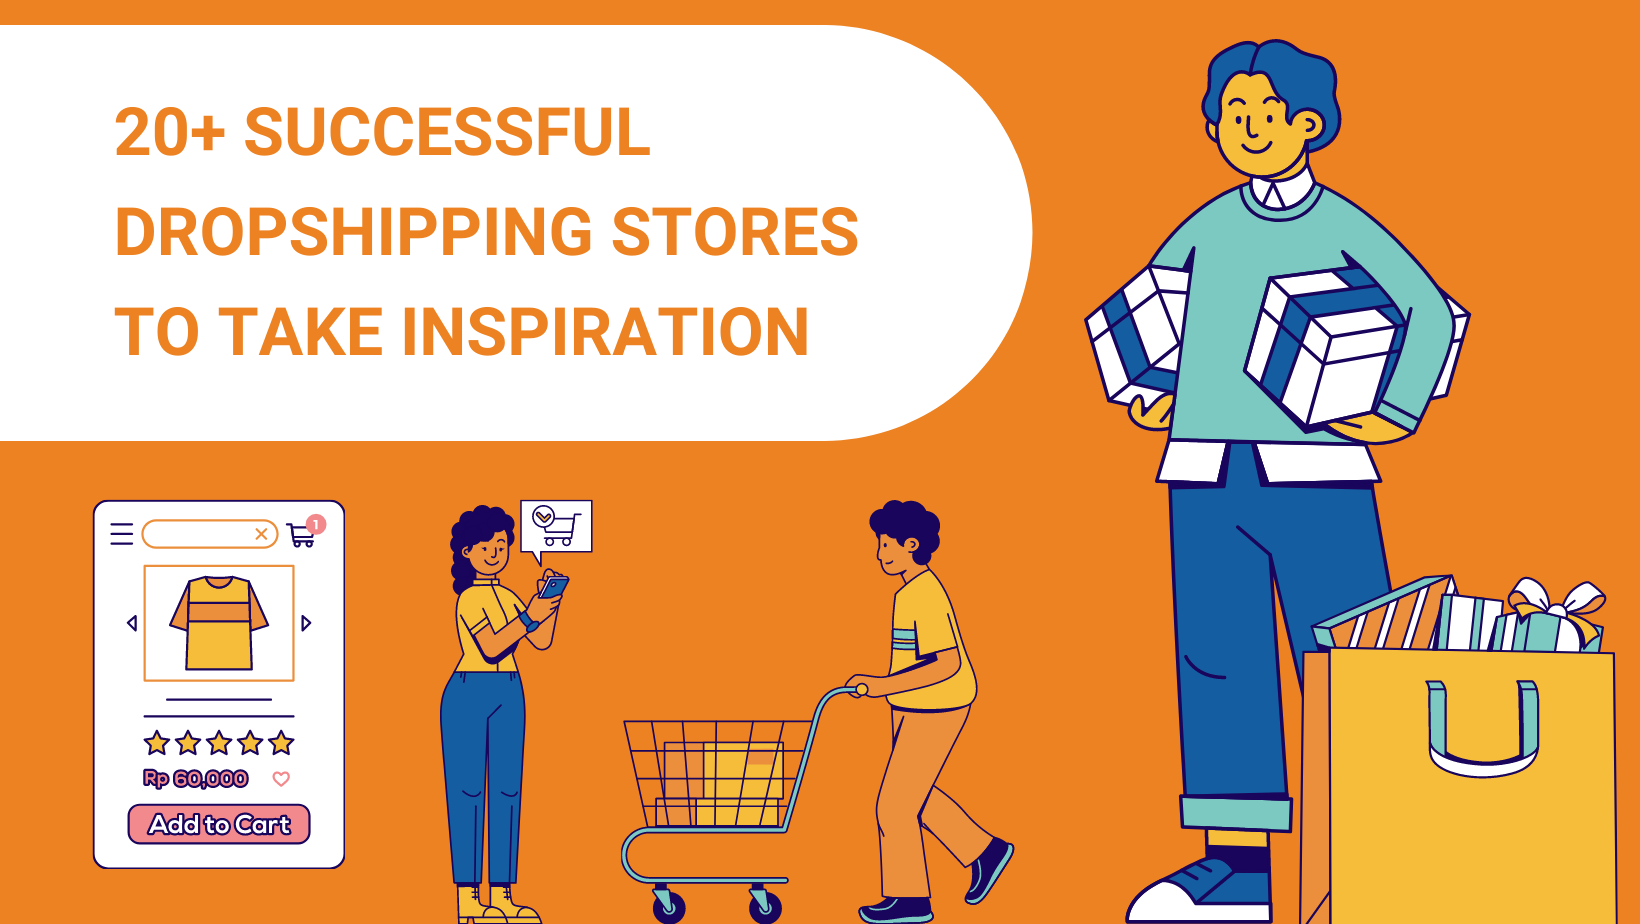 20+ SUCCESSFUL DROPSHIPPING STORES TO TAKE INSPIRATION